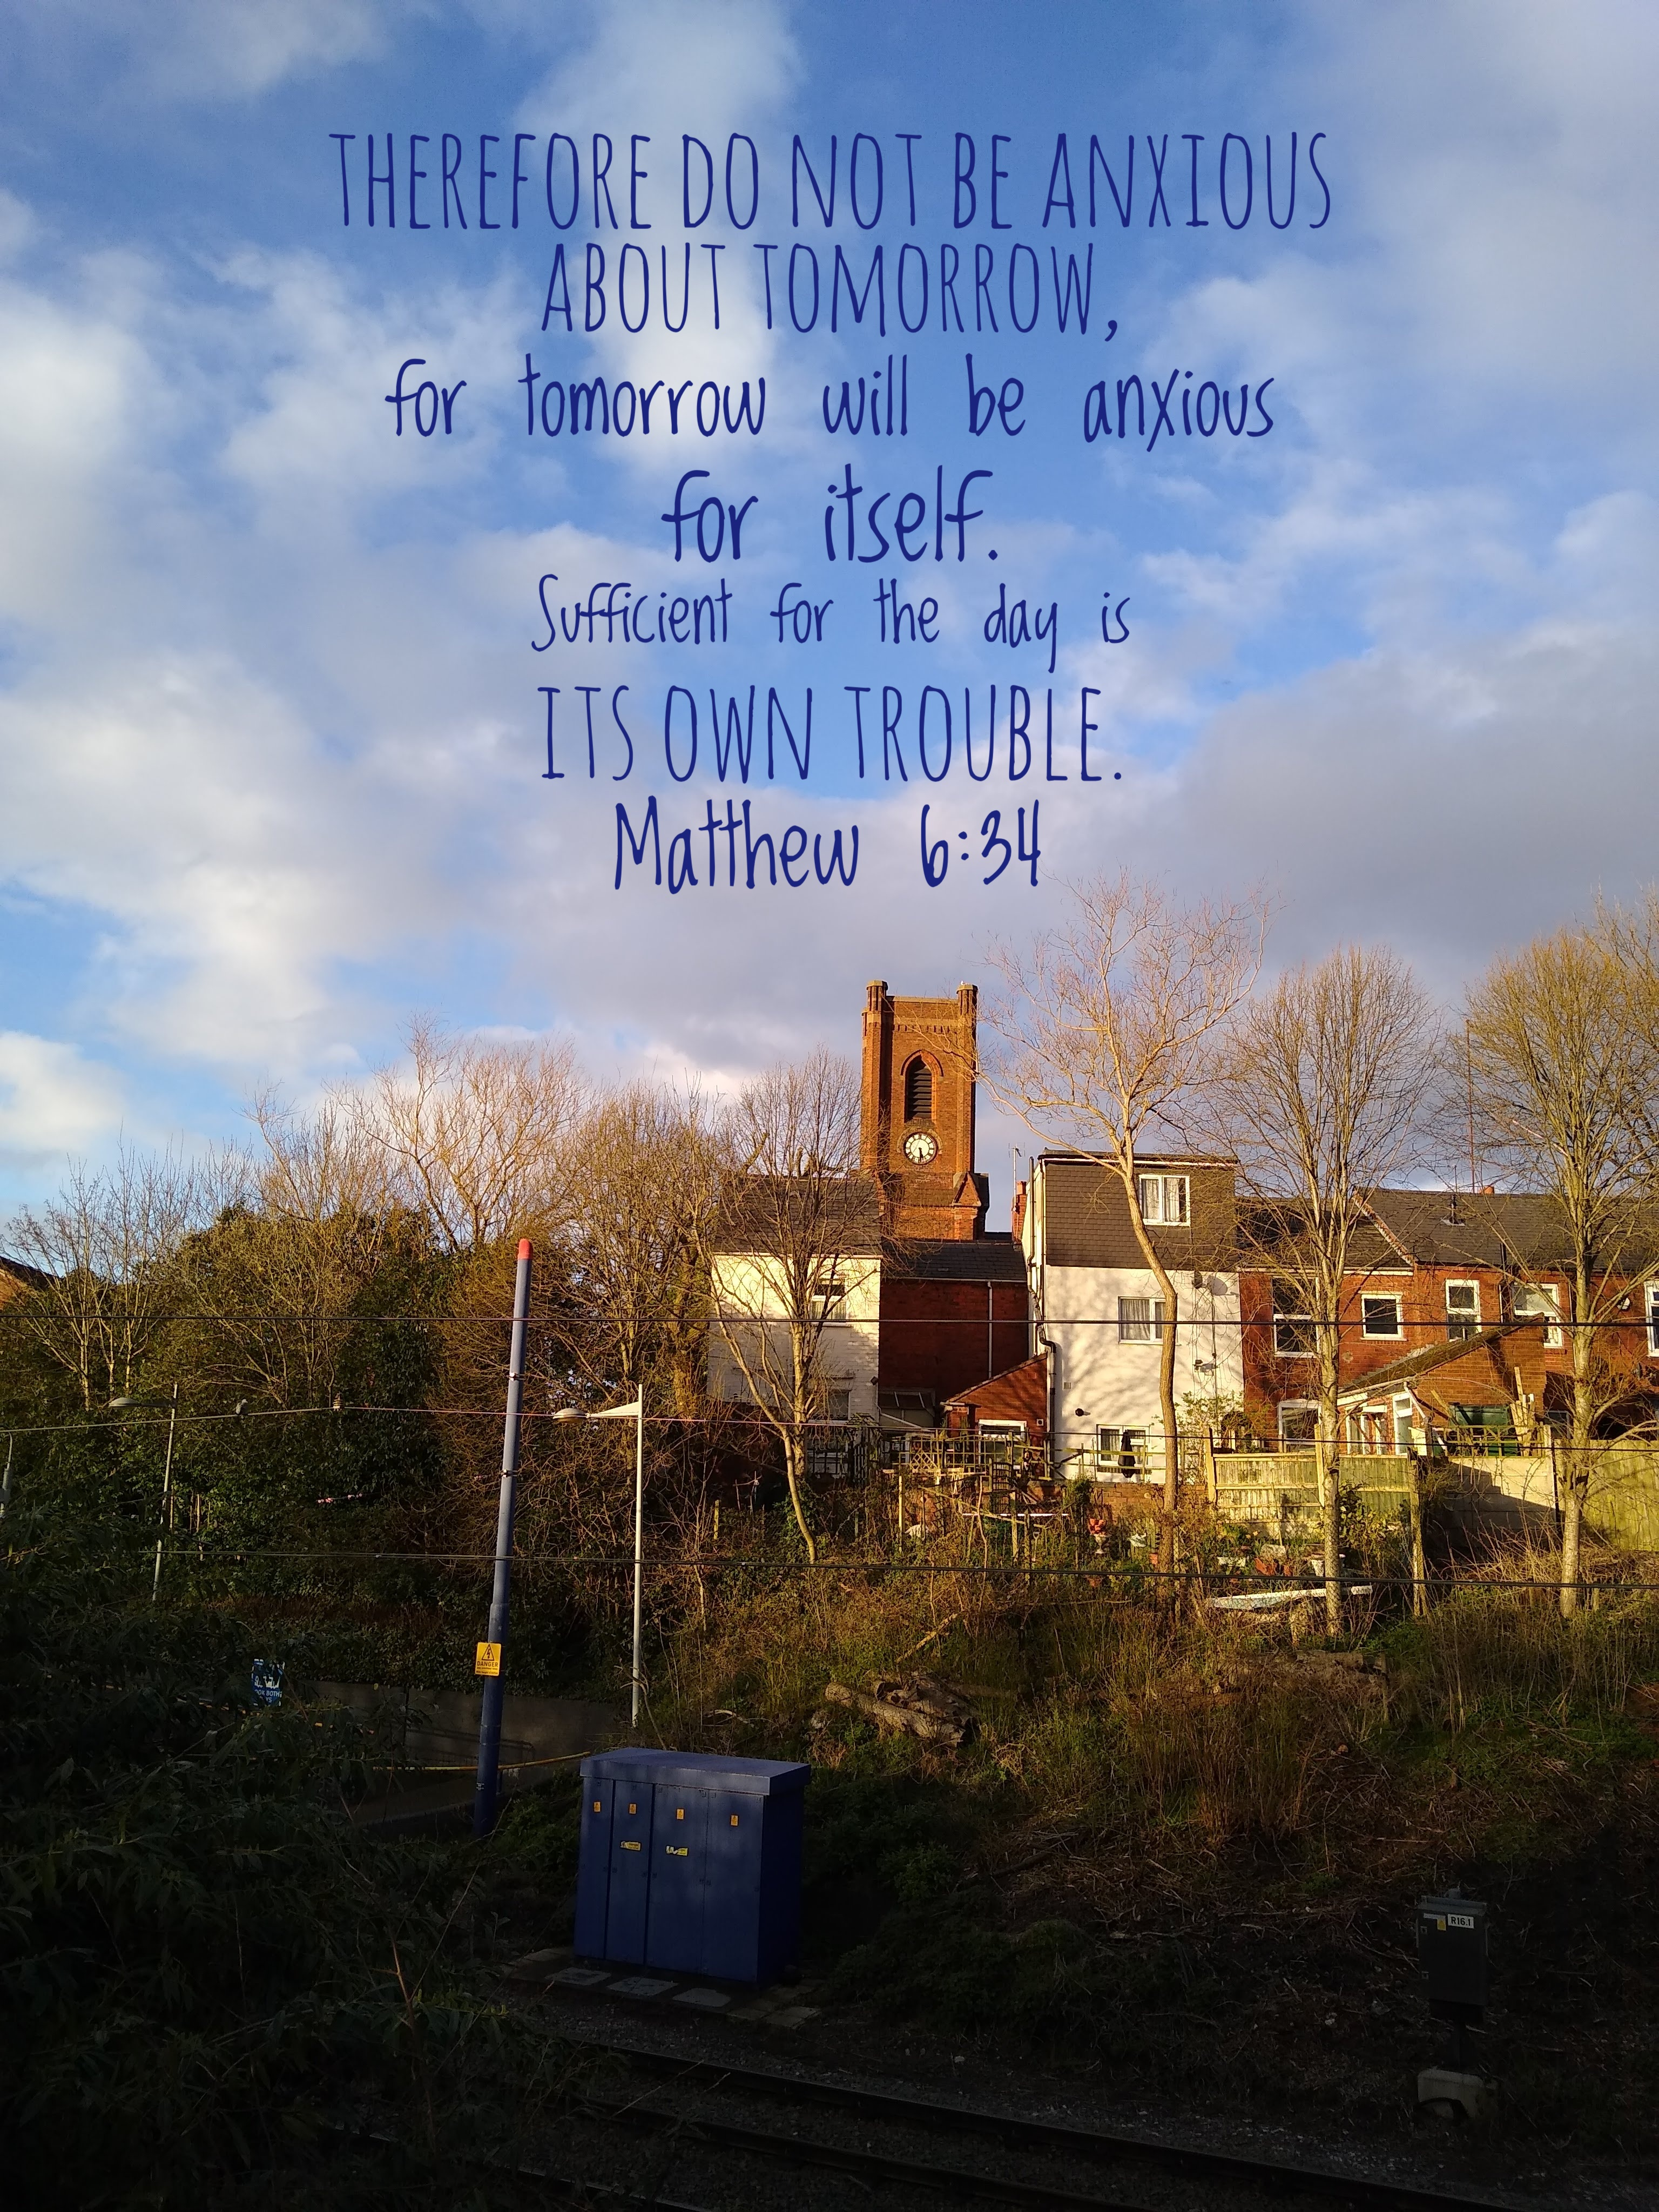 Therefore do not be anxious about tomorrow, for tomorrow will be anxious for itself. Sufficient for the day is its own trouble. Matthew 6:34/picture of church and Victorian terraces across metro line, blue sky with clouds behind